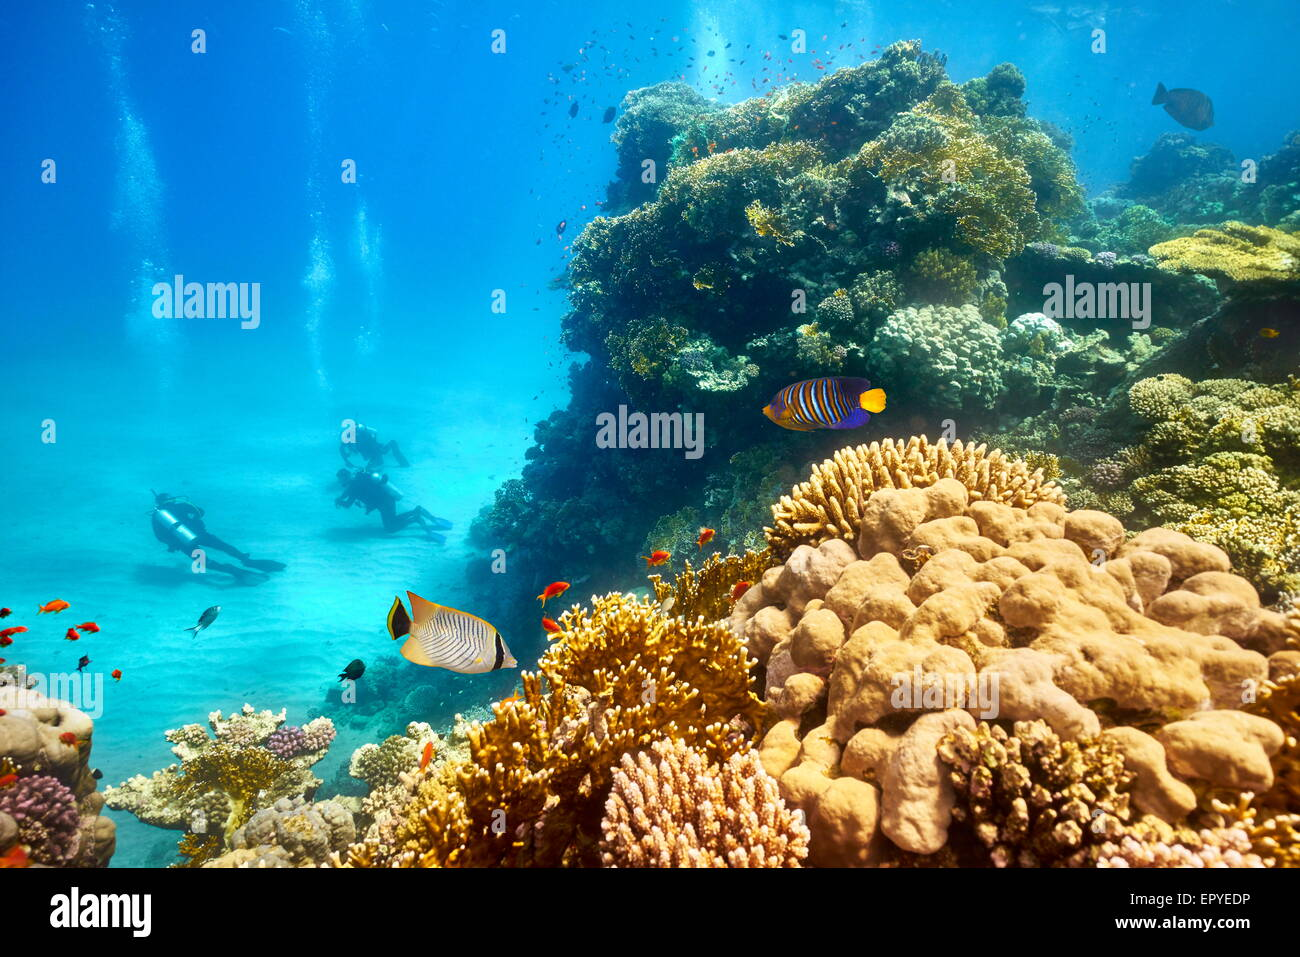 Red Sea - underwater view at scuba divers and the reef, Marsa Alam, Egypt - Stock Image